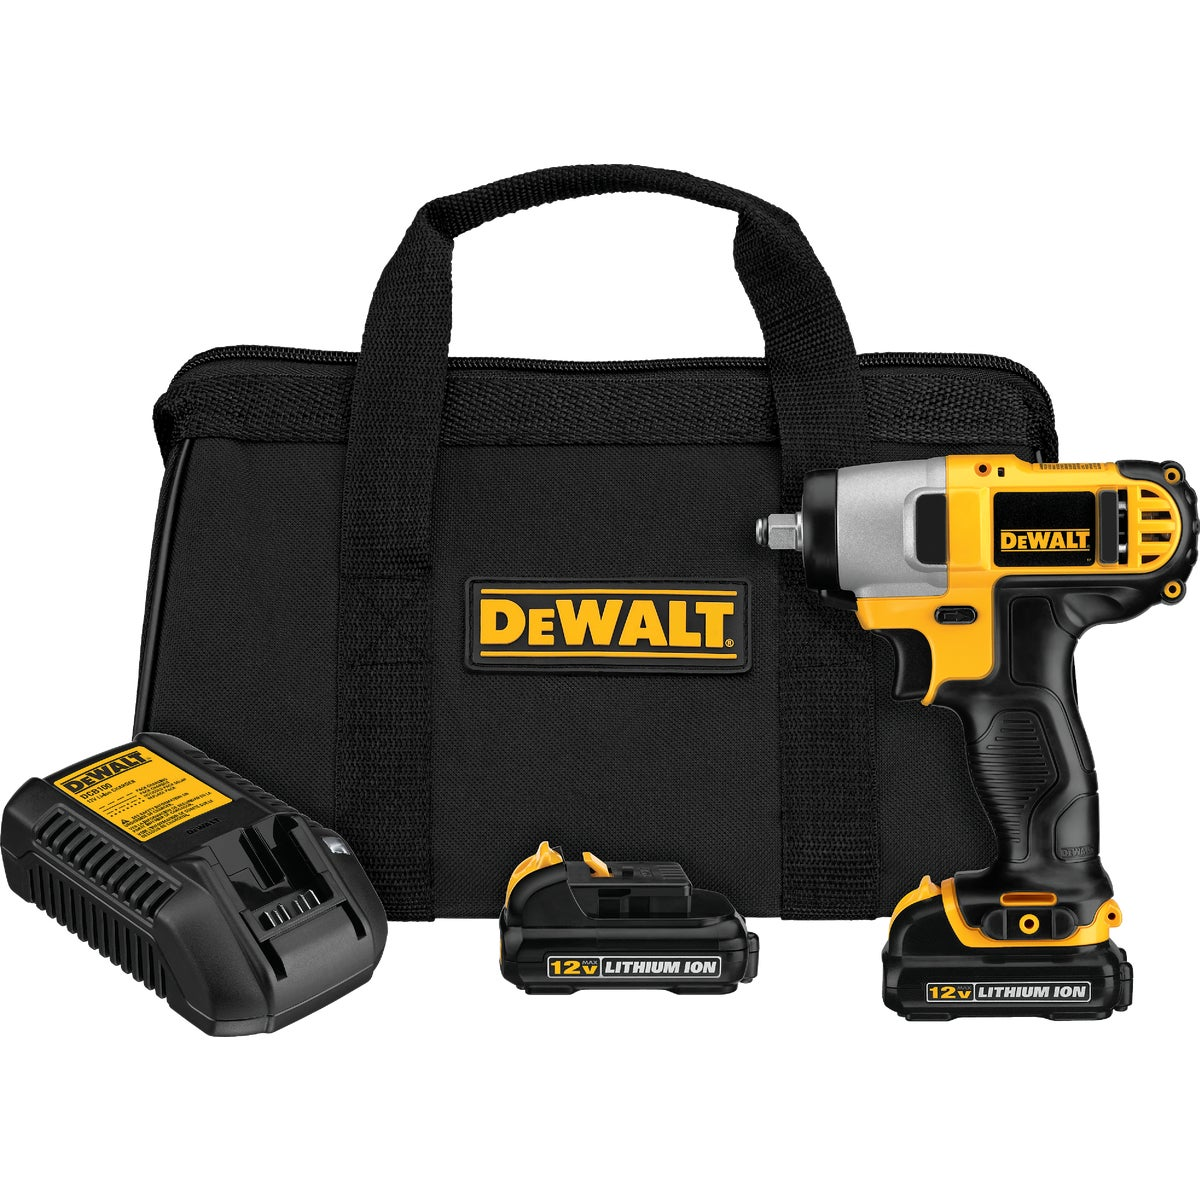 "12V 3/8"" IMPACT WRENCH - DCF813S2 by DeWalt"